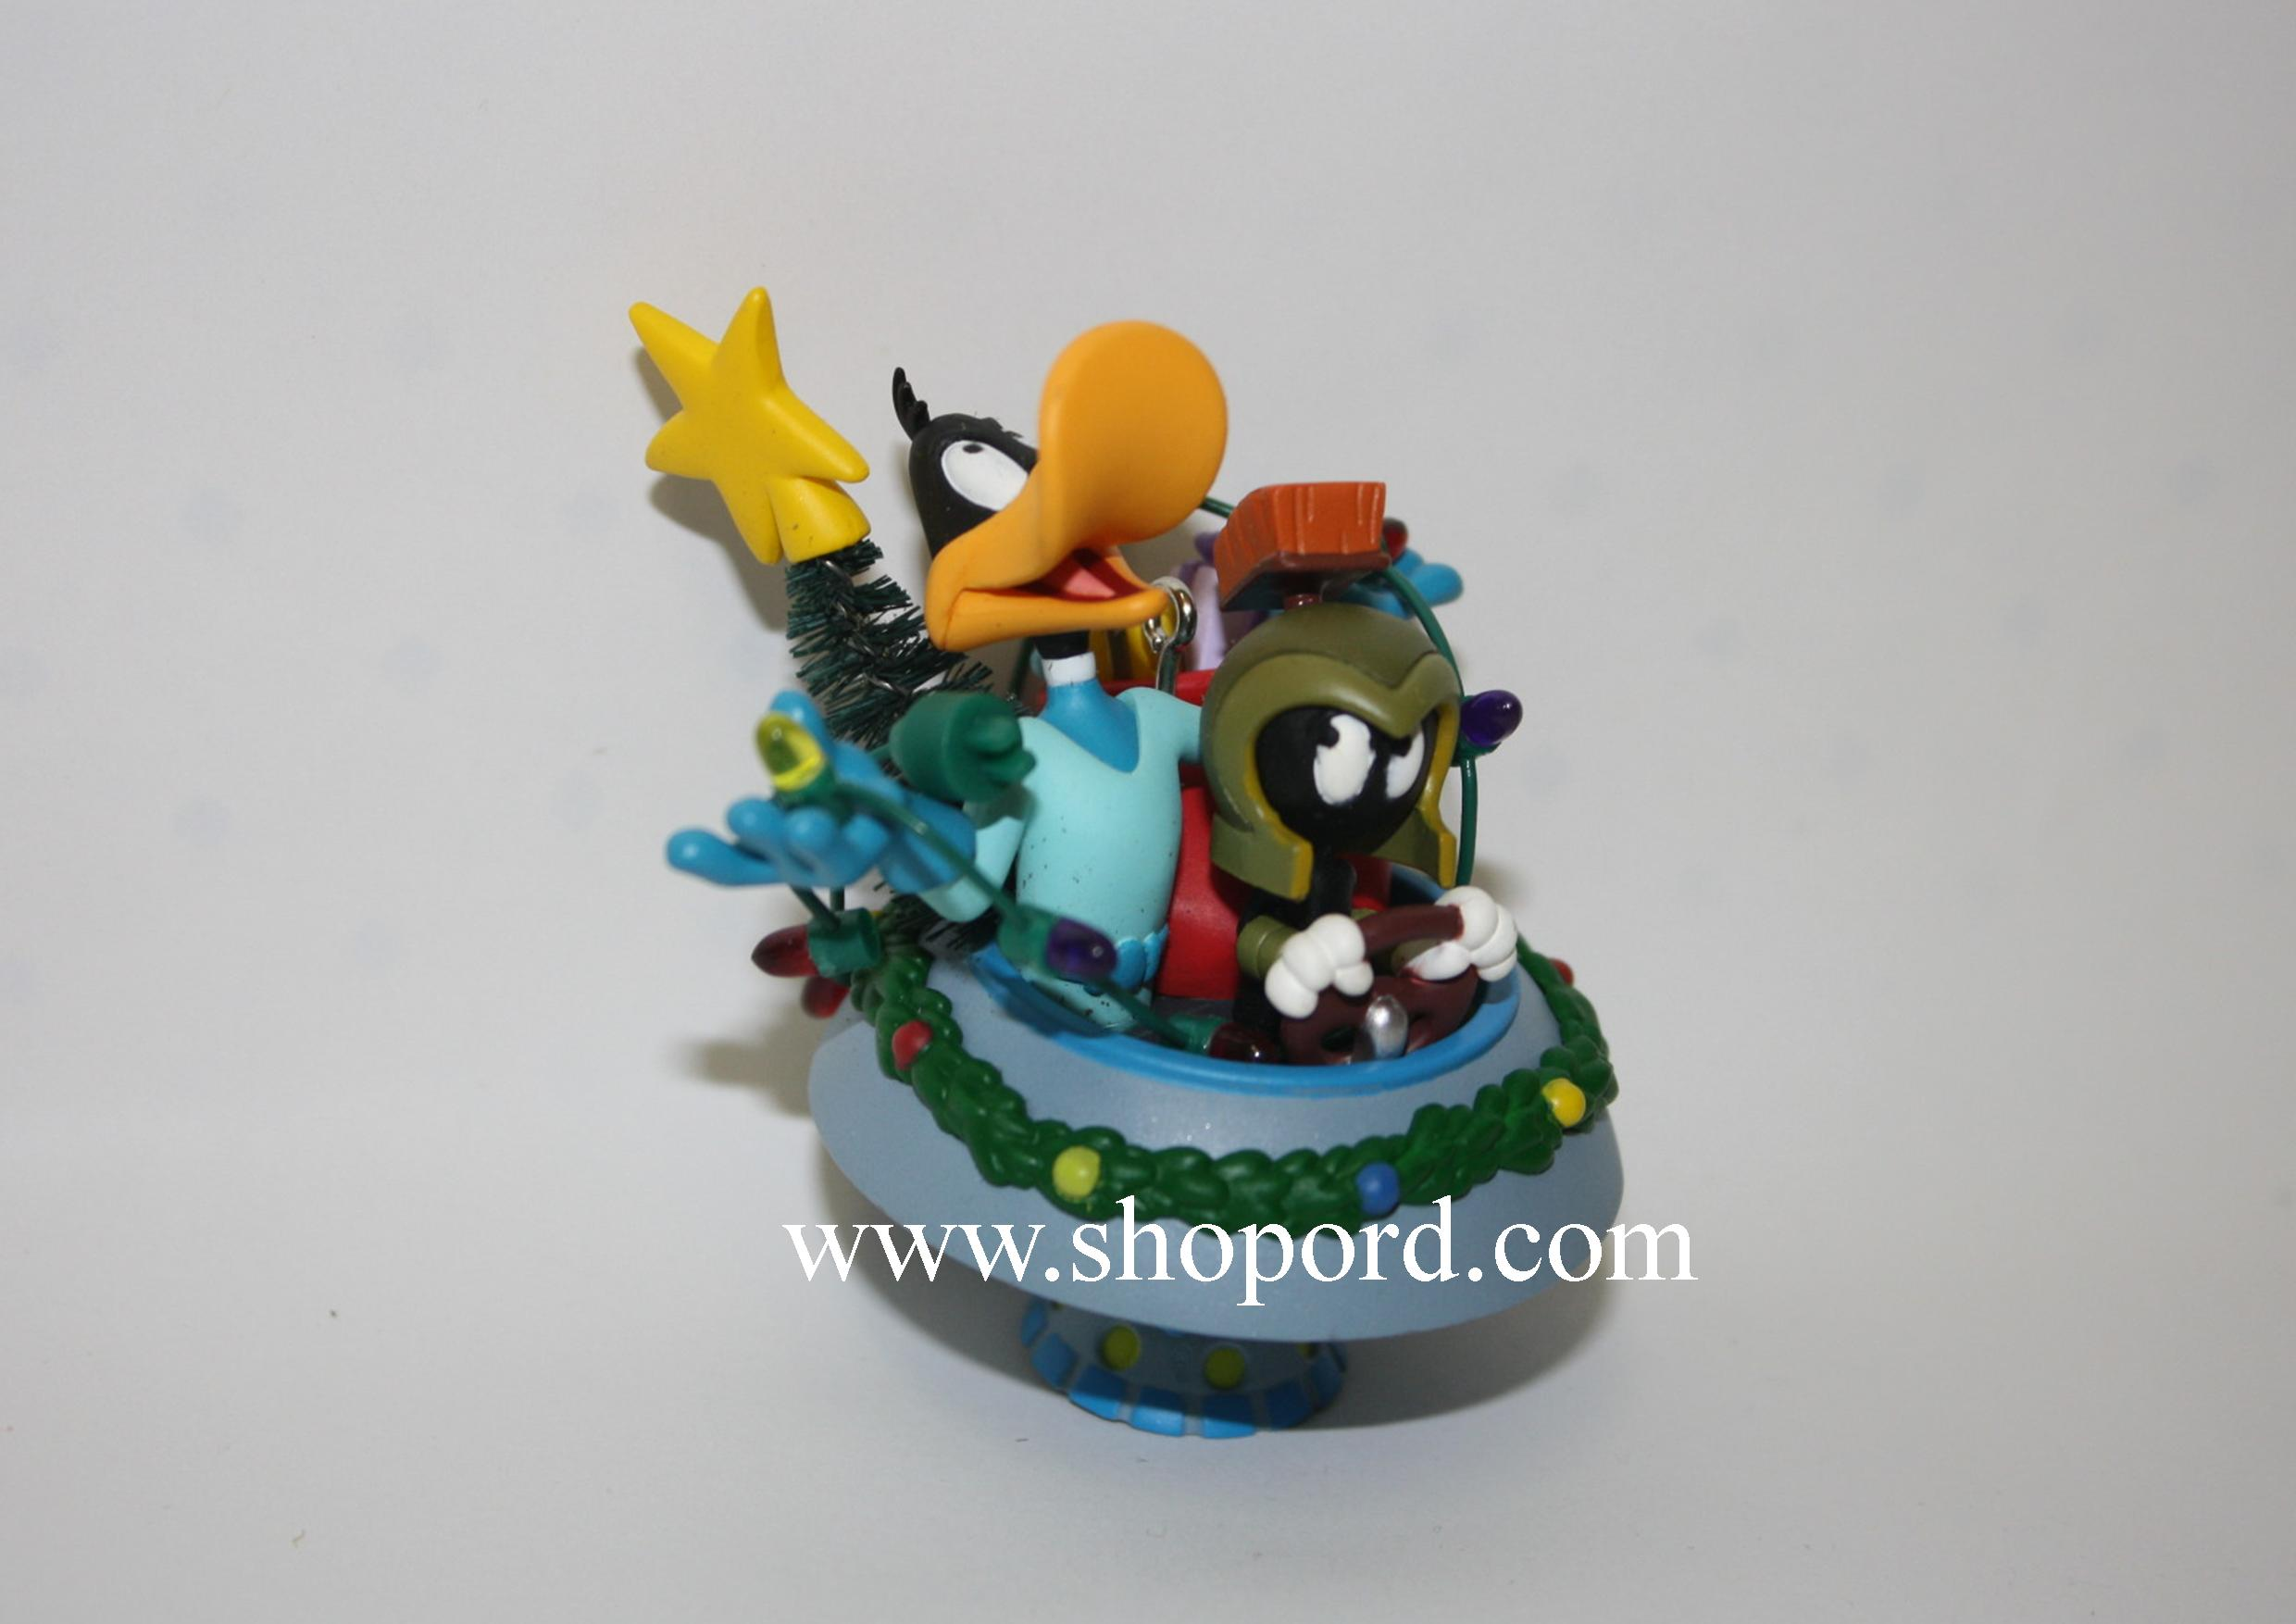 Hallmark 2005 Duck Dodgers And Marvin The Martian Looney Tunes Ornament QXI8765 No Box